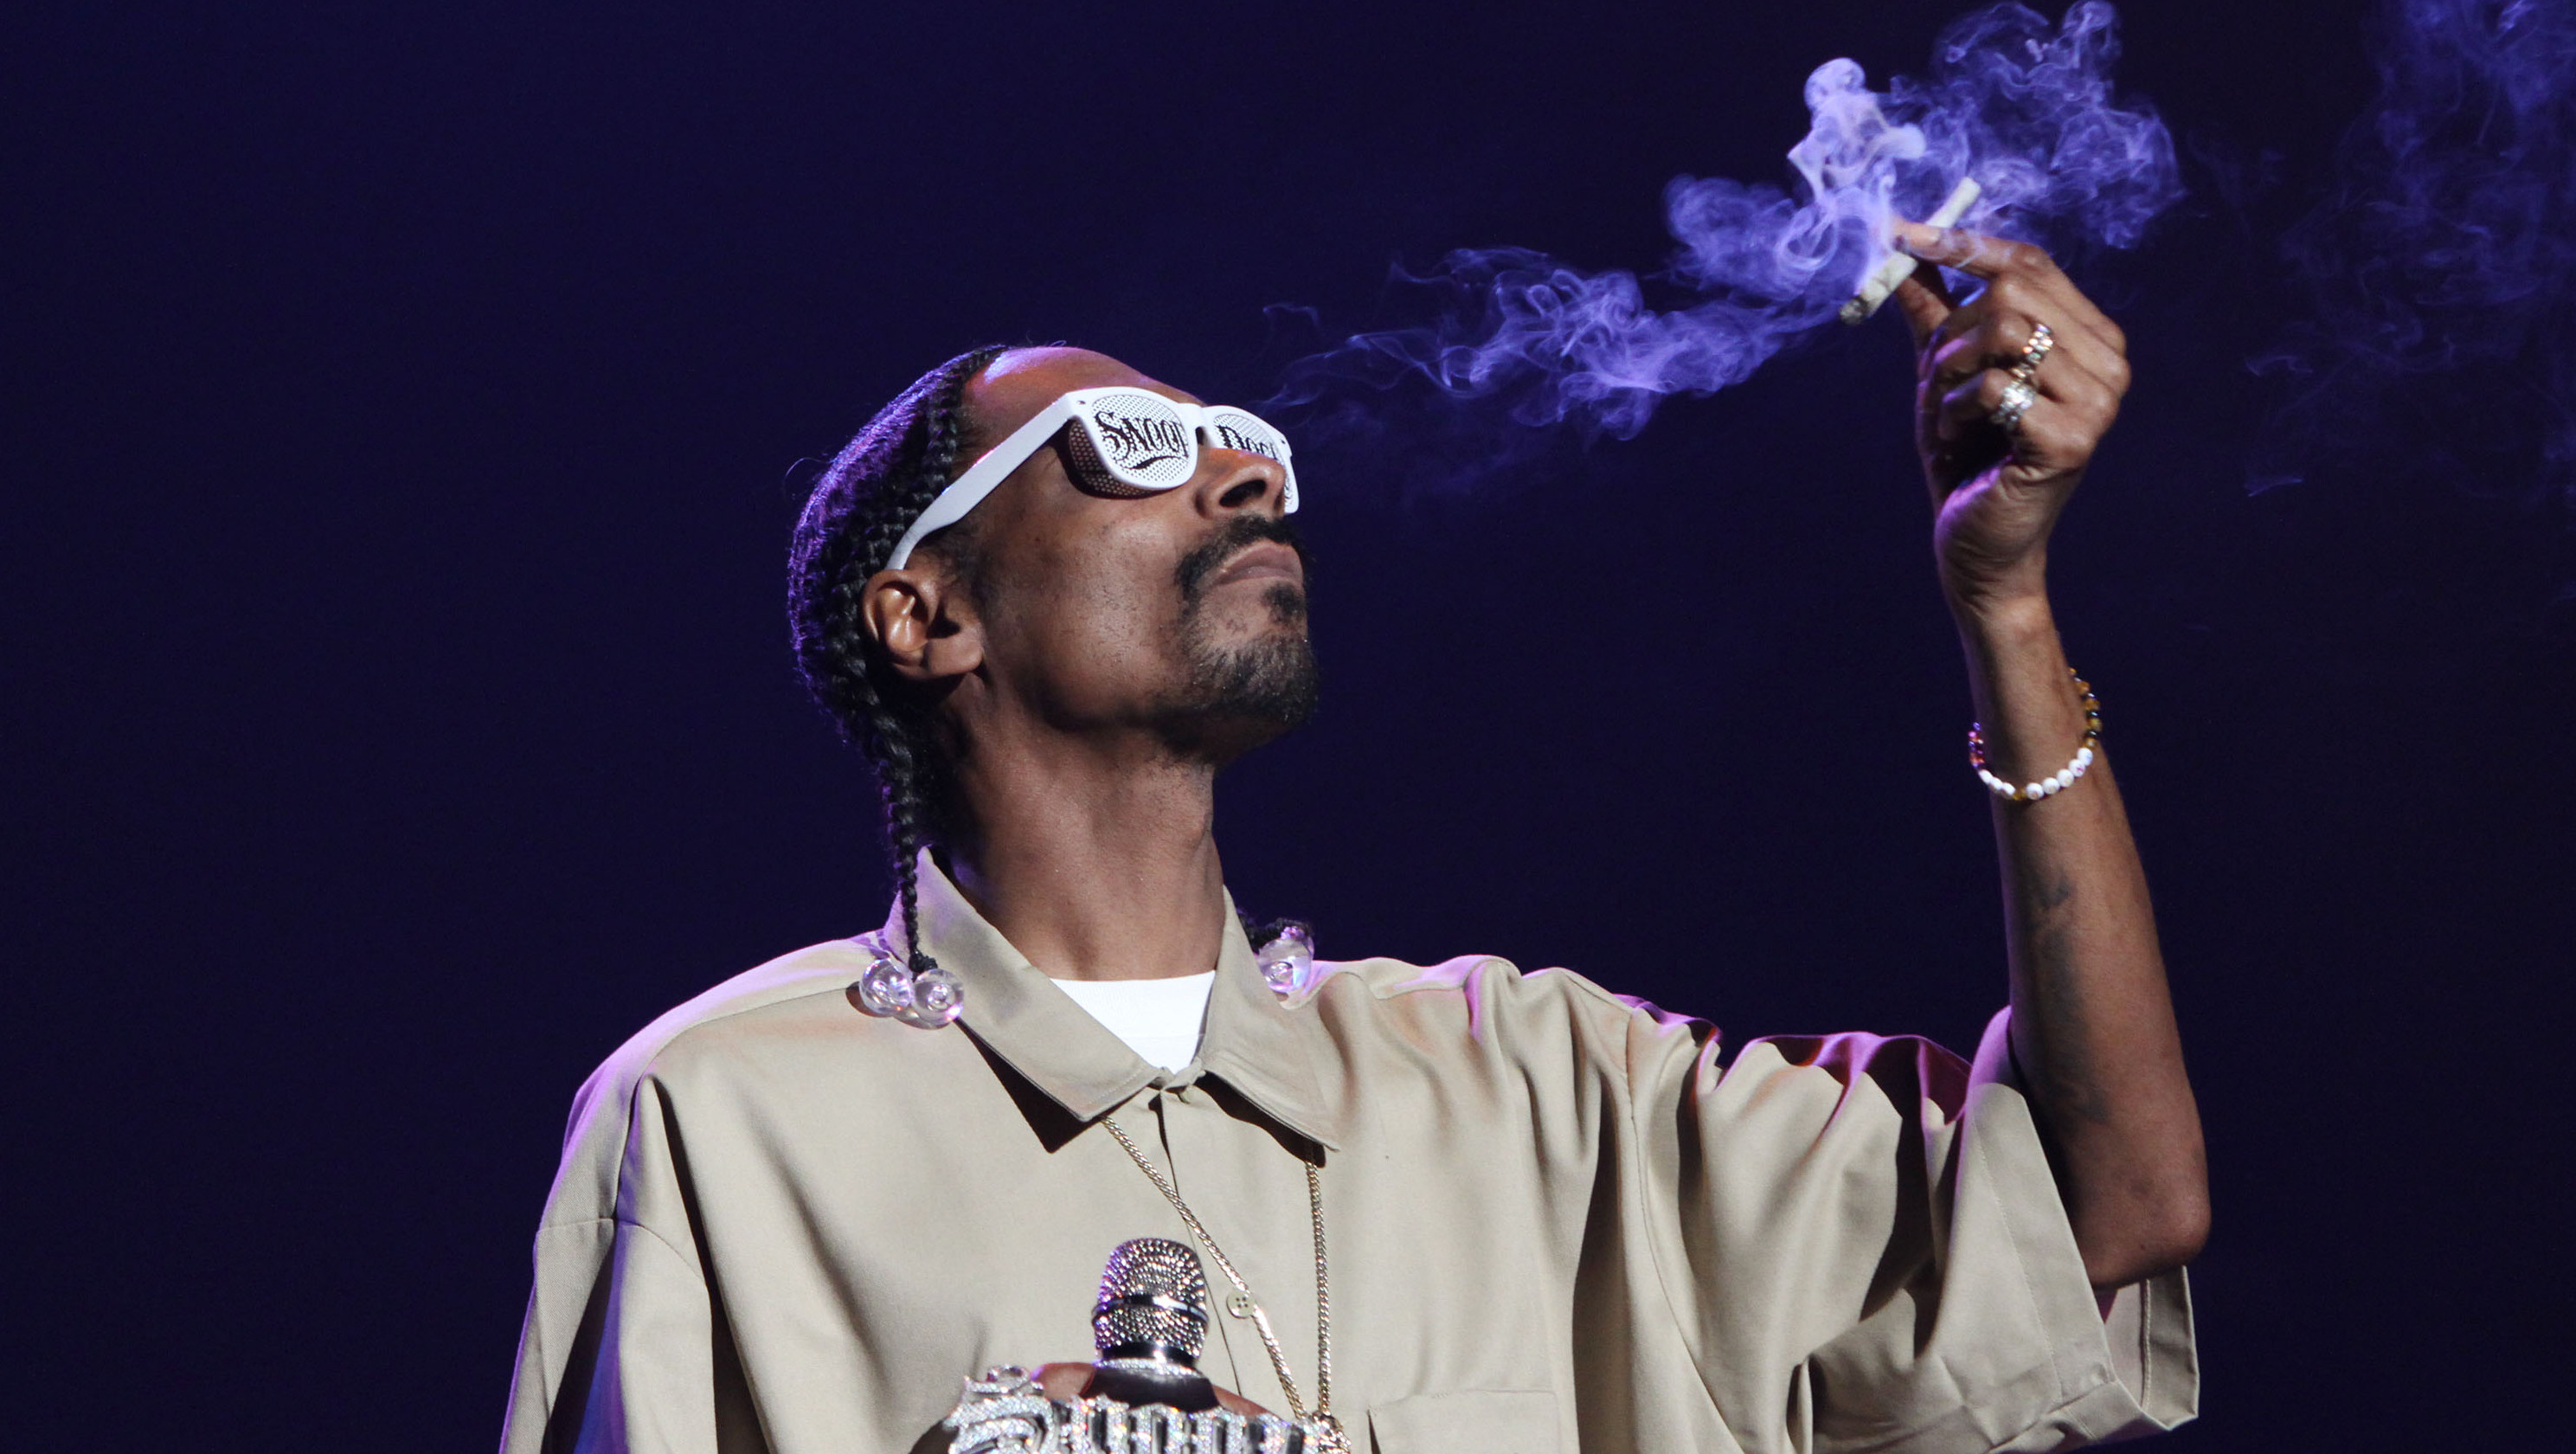 LOS ANGELES, CA - DECEMBER 13:  Snoop Dogg performs in concert at The Wiltern on December 13, 2011 in Los Angeles, California